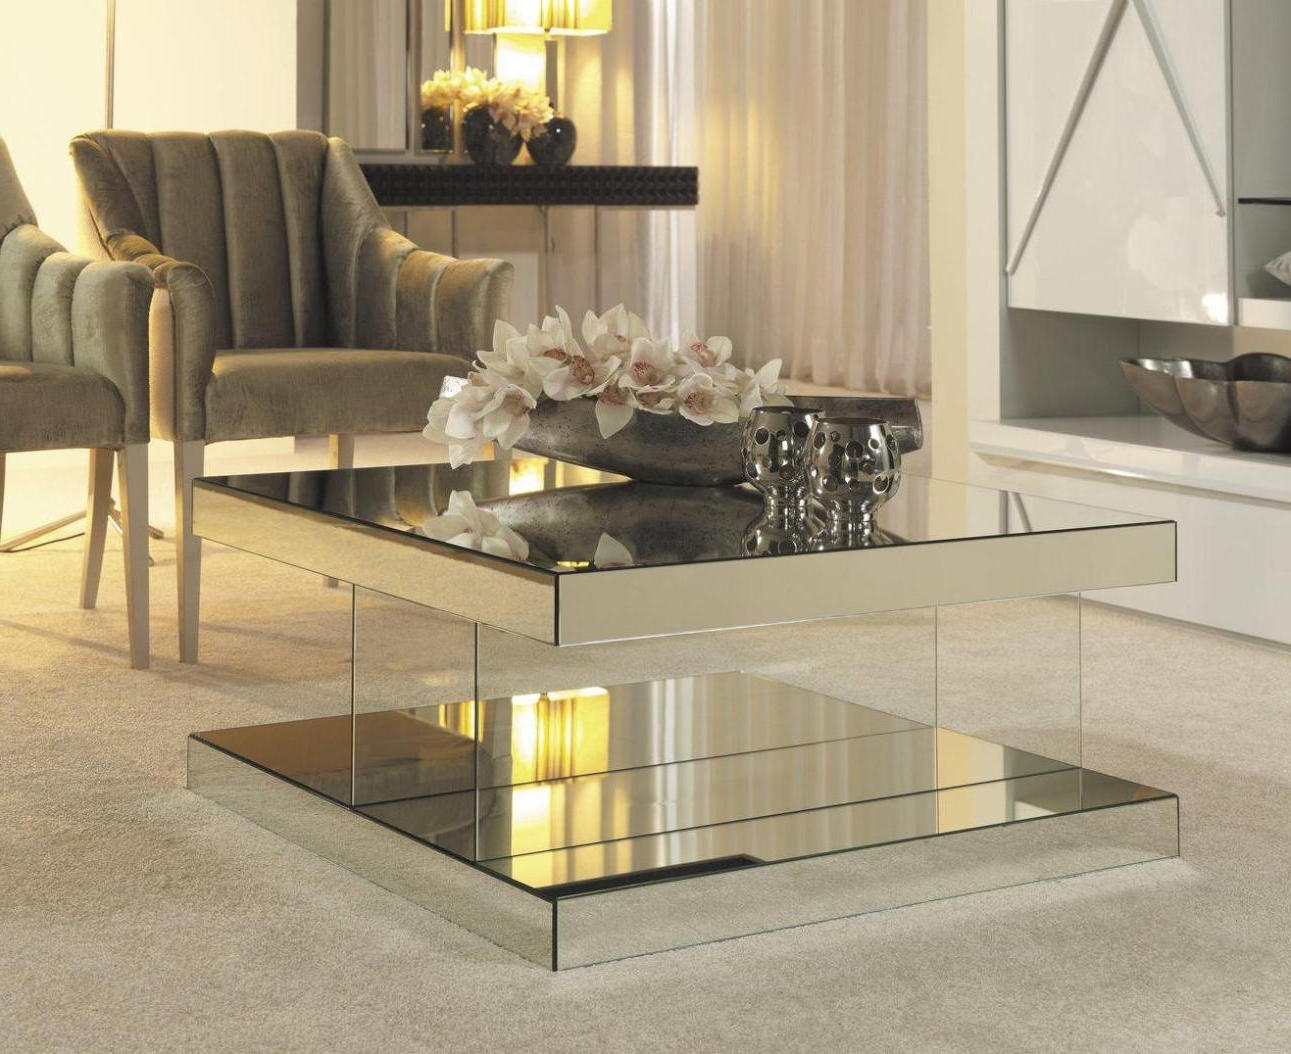 mirrored coffee table tray 4 - Mirrored Coffee Table Tray Roy Home Design - Mirrored  Coffee - Mirrored Coffee Table Tray IDI Design